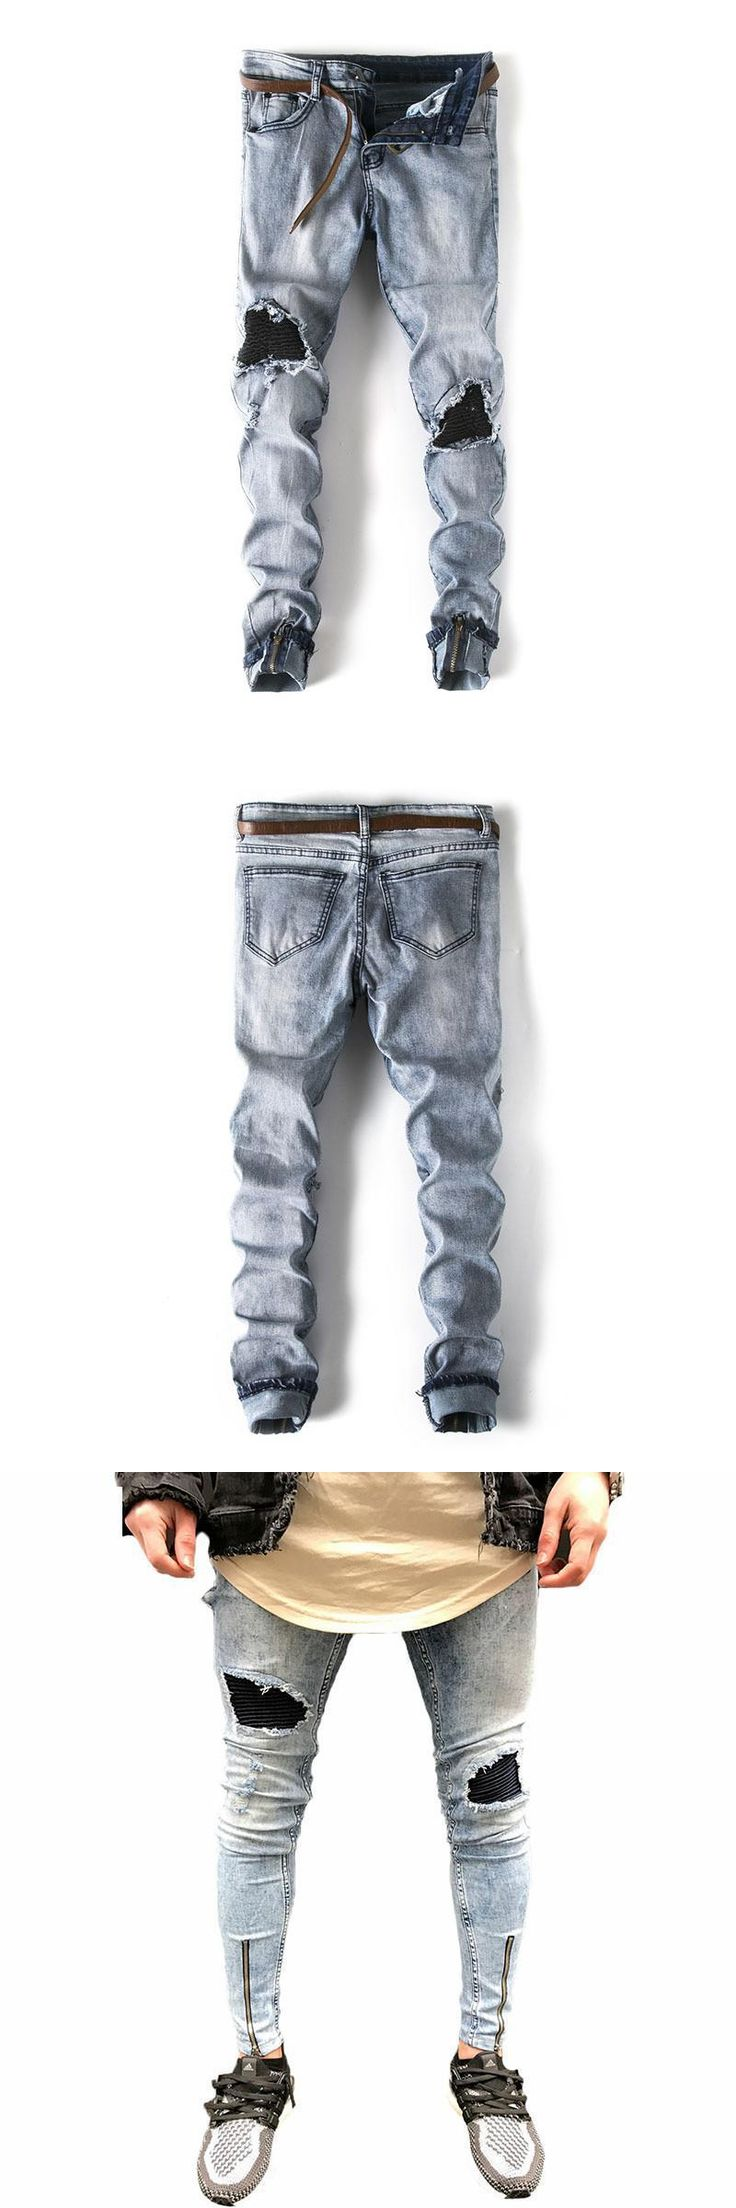 Streetwear denim pants Popular Snowflake Whitish Mens Jeans Washed Spliced Hole Jeans Casual Men's Slim Fit Jogger Jeans